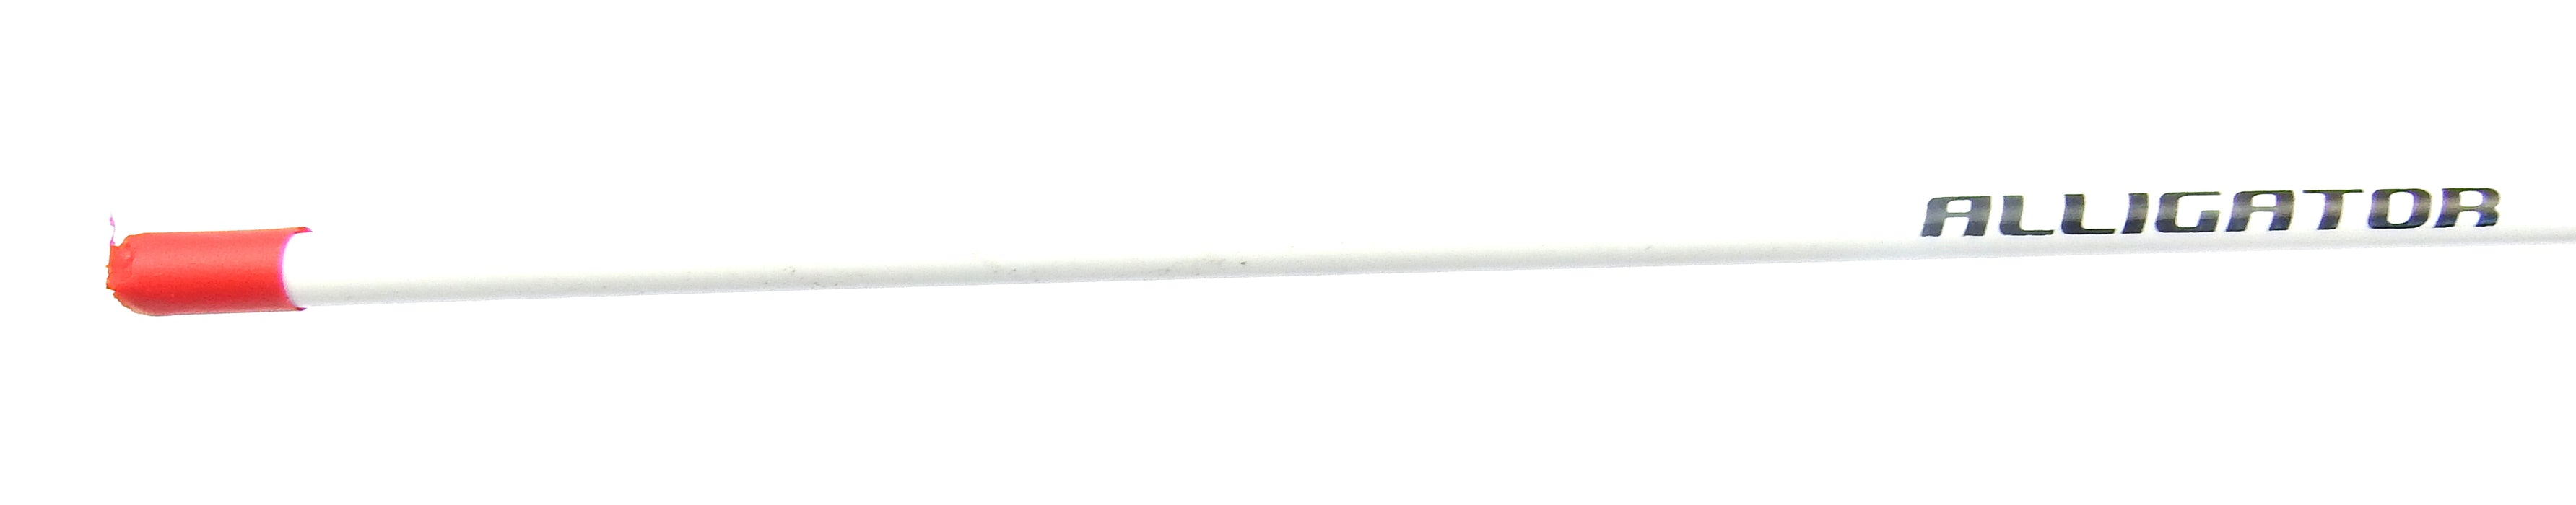 Cable - Universal Outer - 5mm - Teflon Lined - White - Per Metre